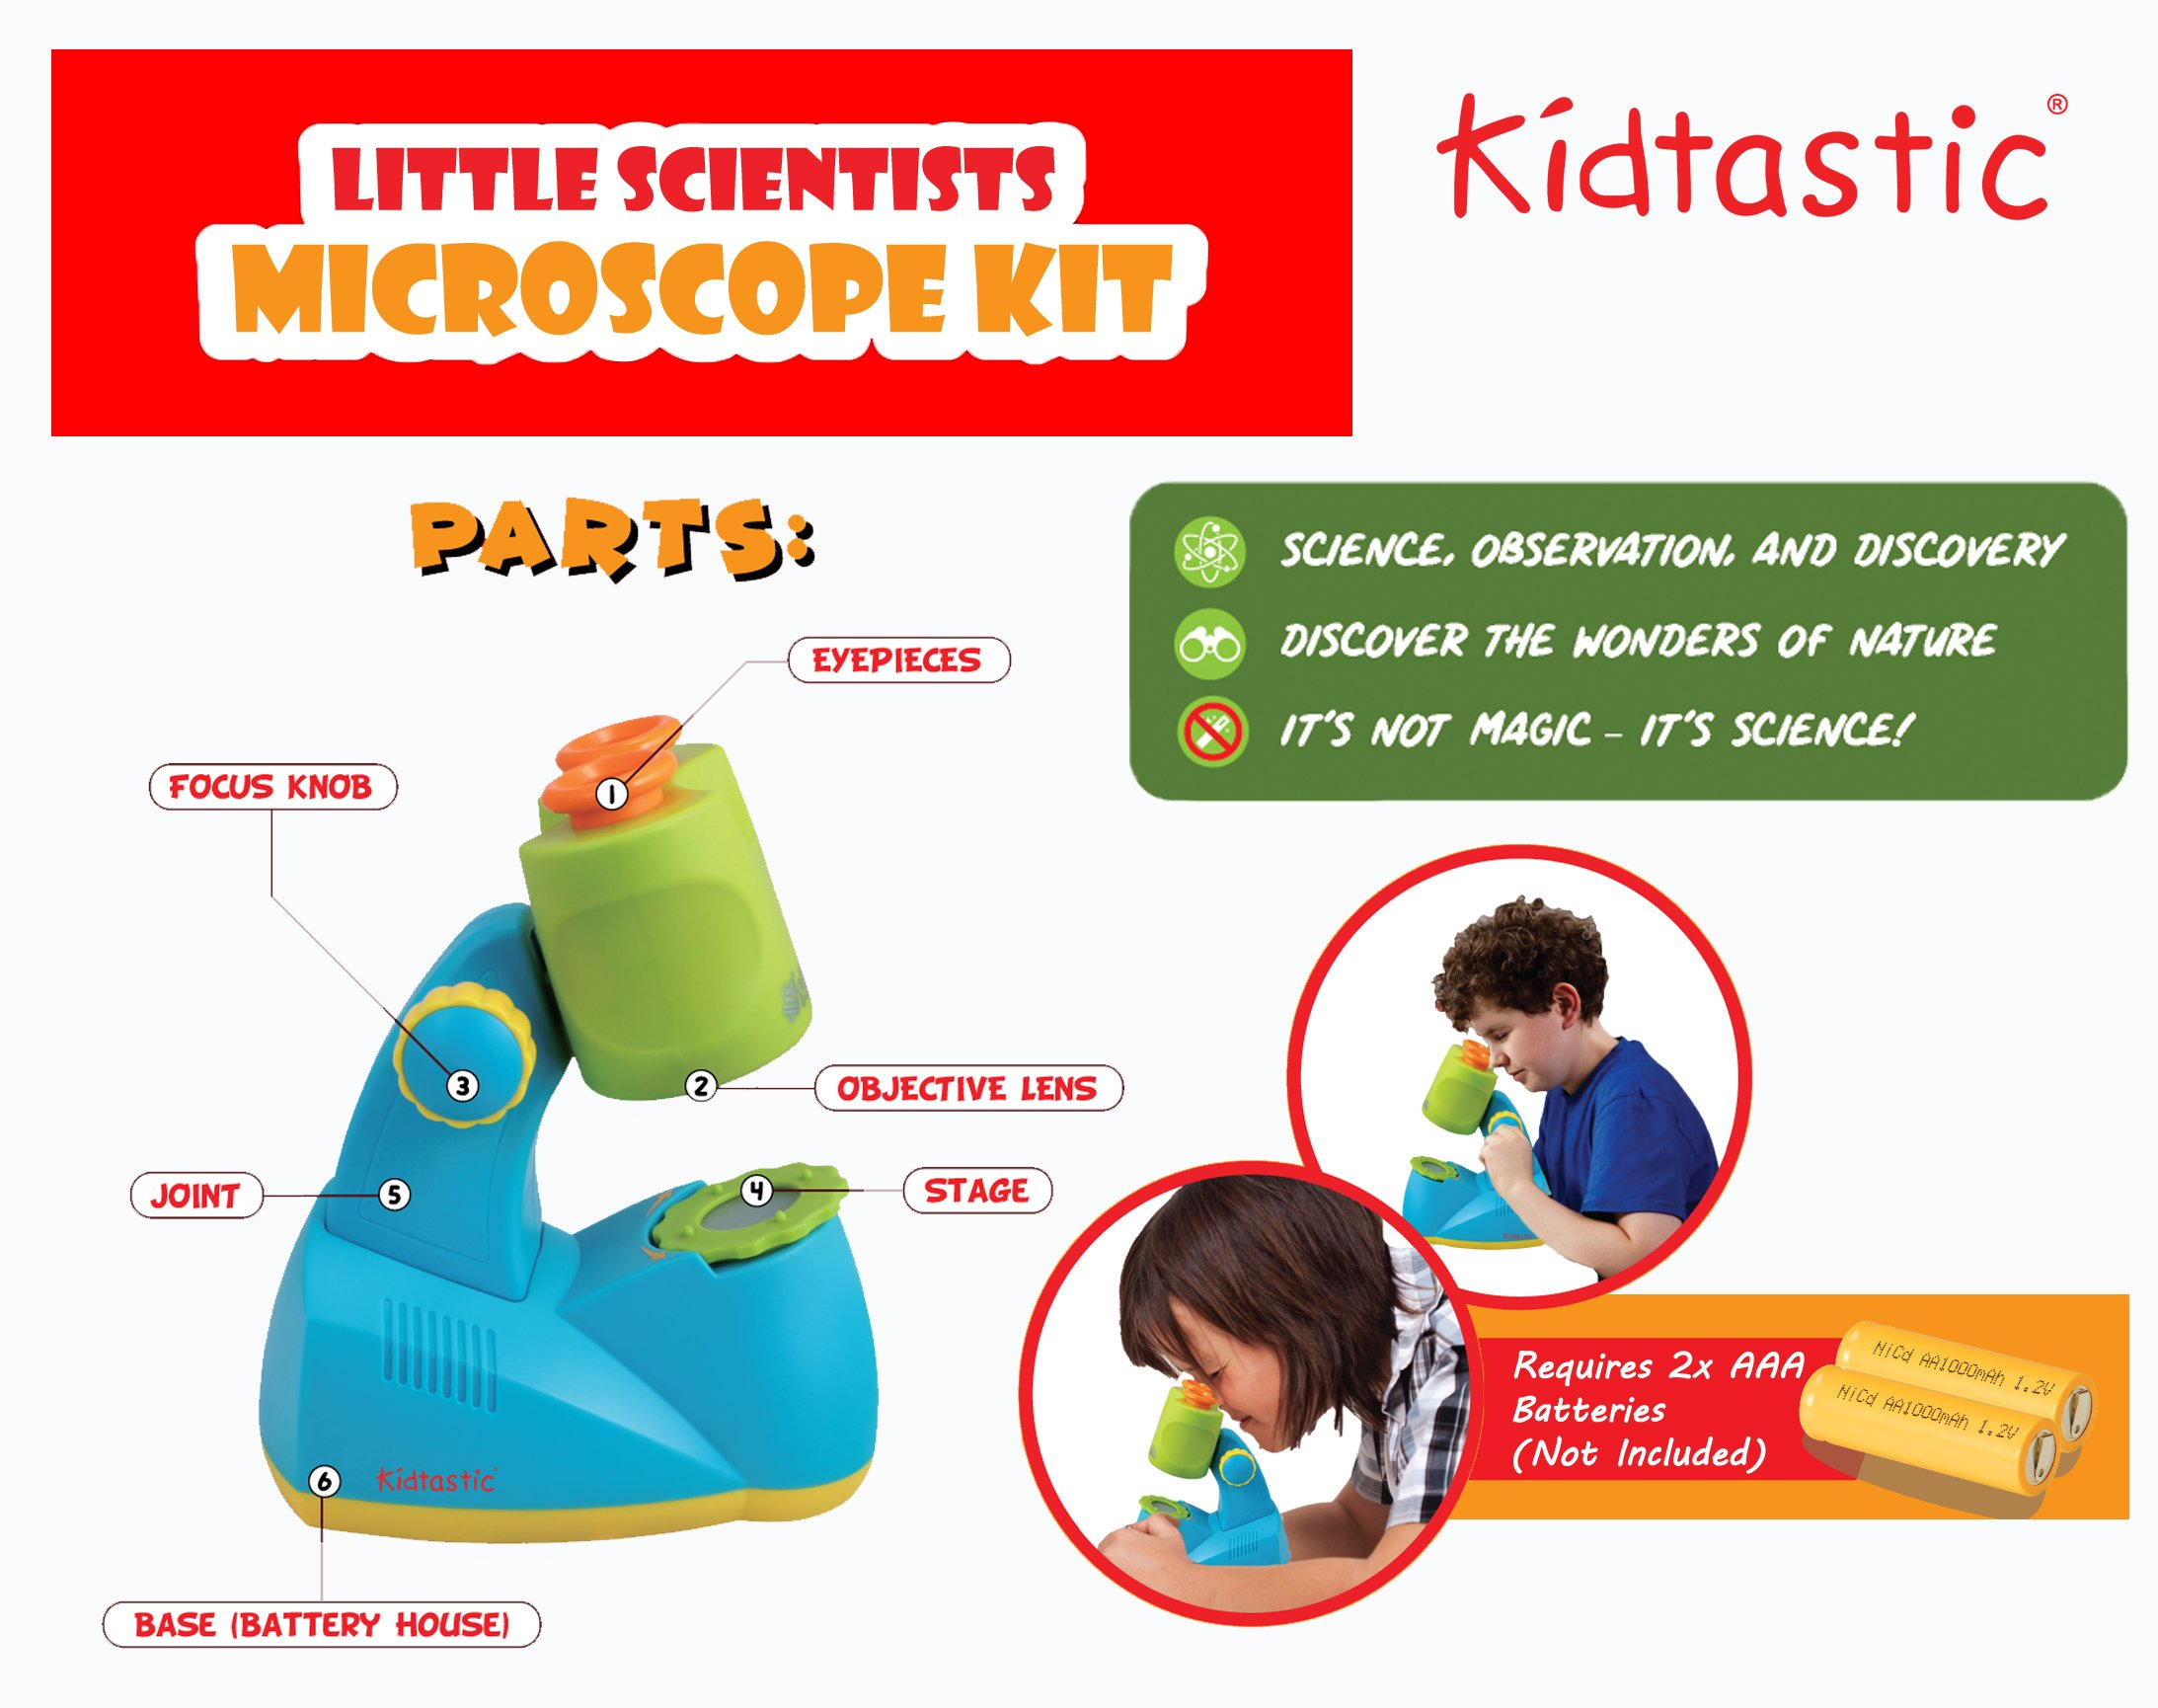 Kidtastic Microscope Science Kit for Kids - Fun Learning Toys for Preschoolers - STEM Toy for 3 Year olds - with 12 Slides Animals & Nature, 8X Zoom, LED Light - for Ages 3, 4, 5, 6 and up by Kidtastic (Image #3)